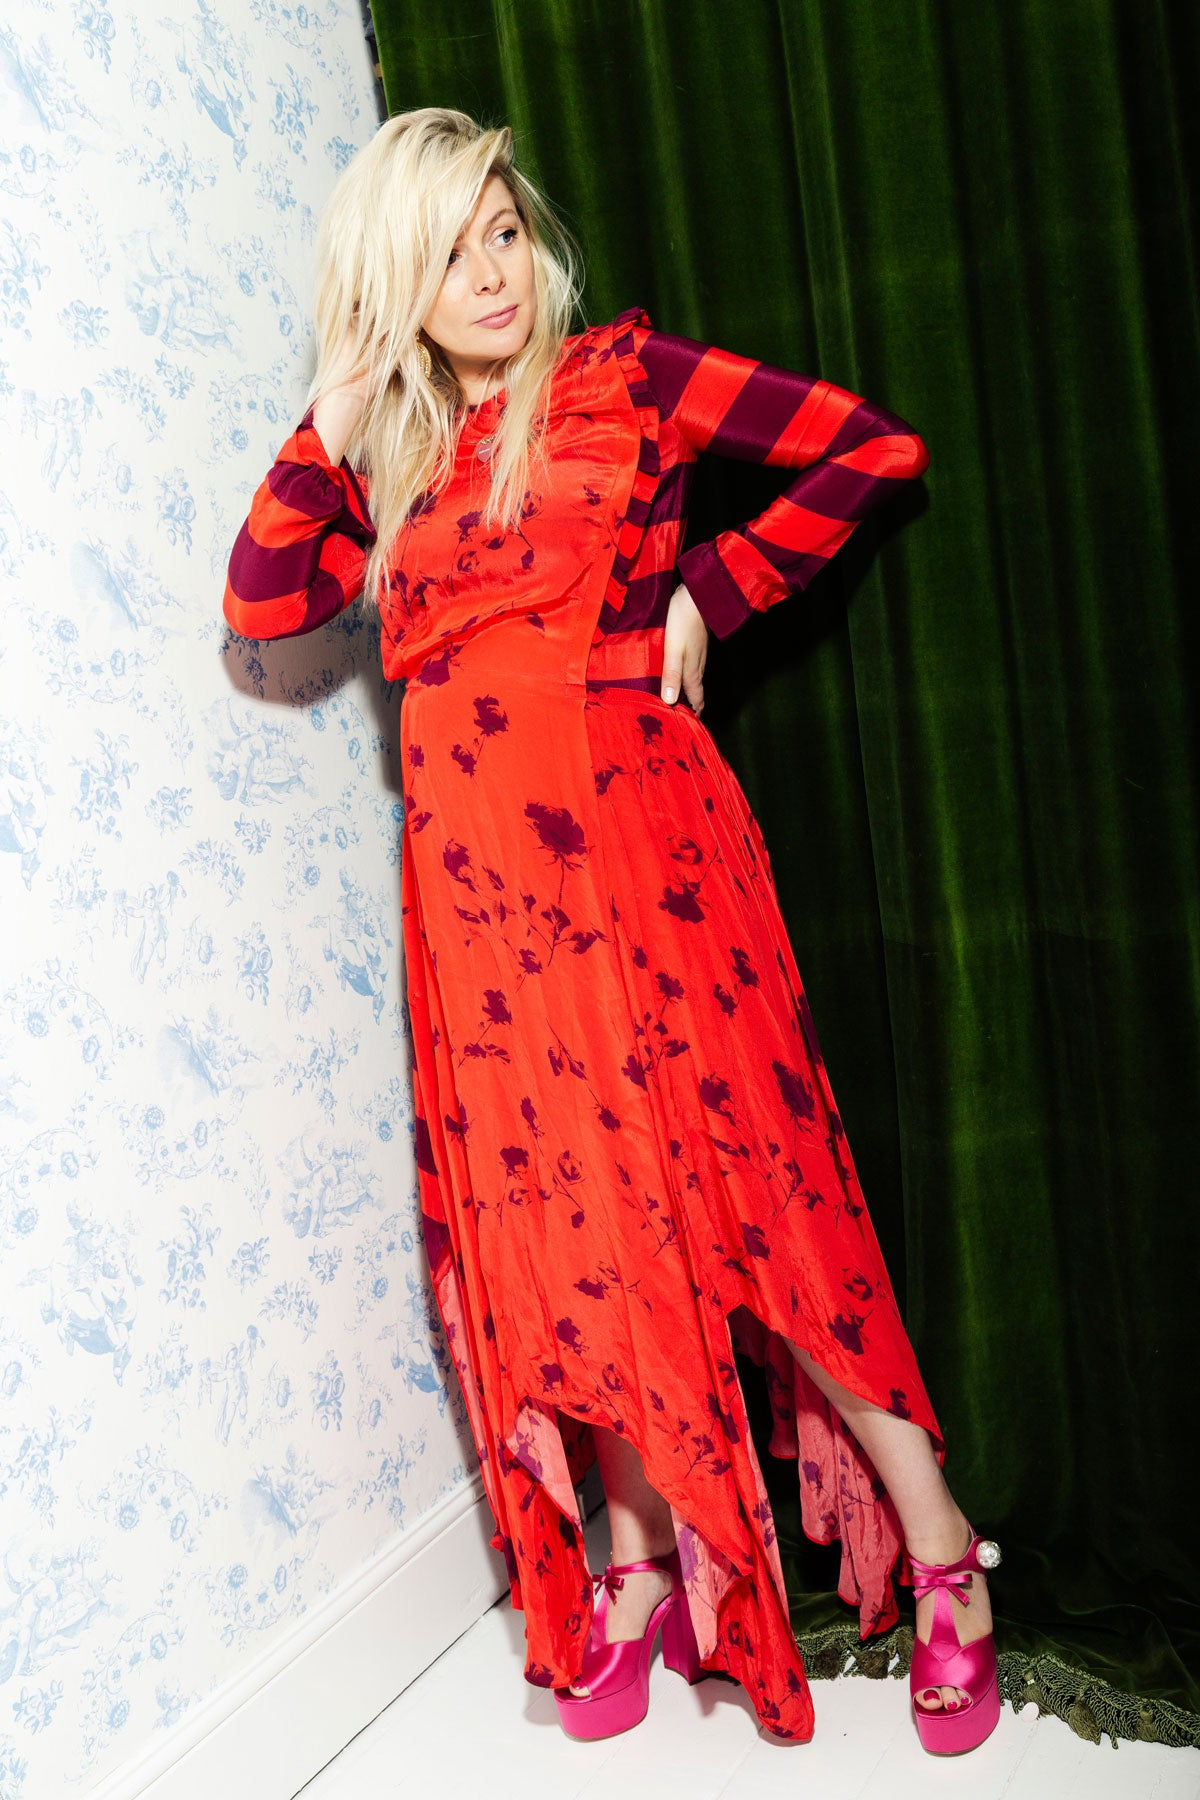 Bella Howard in preen line wearing a red dress from resort 19